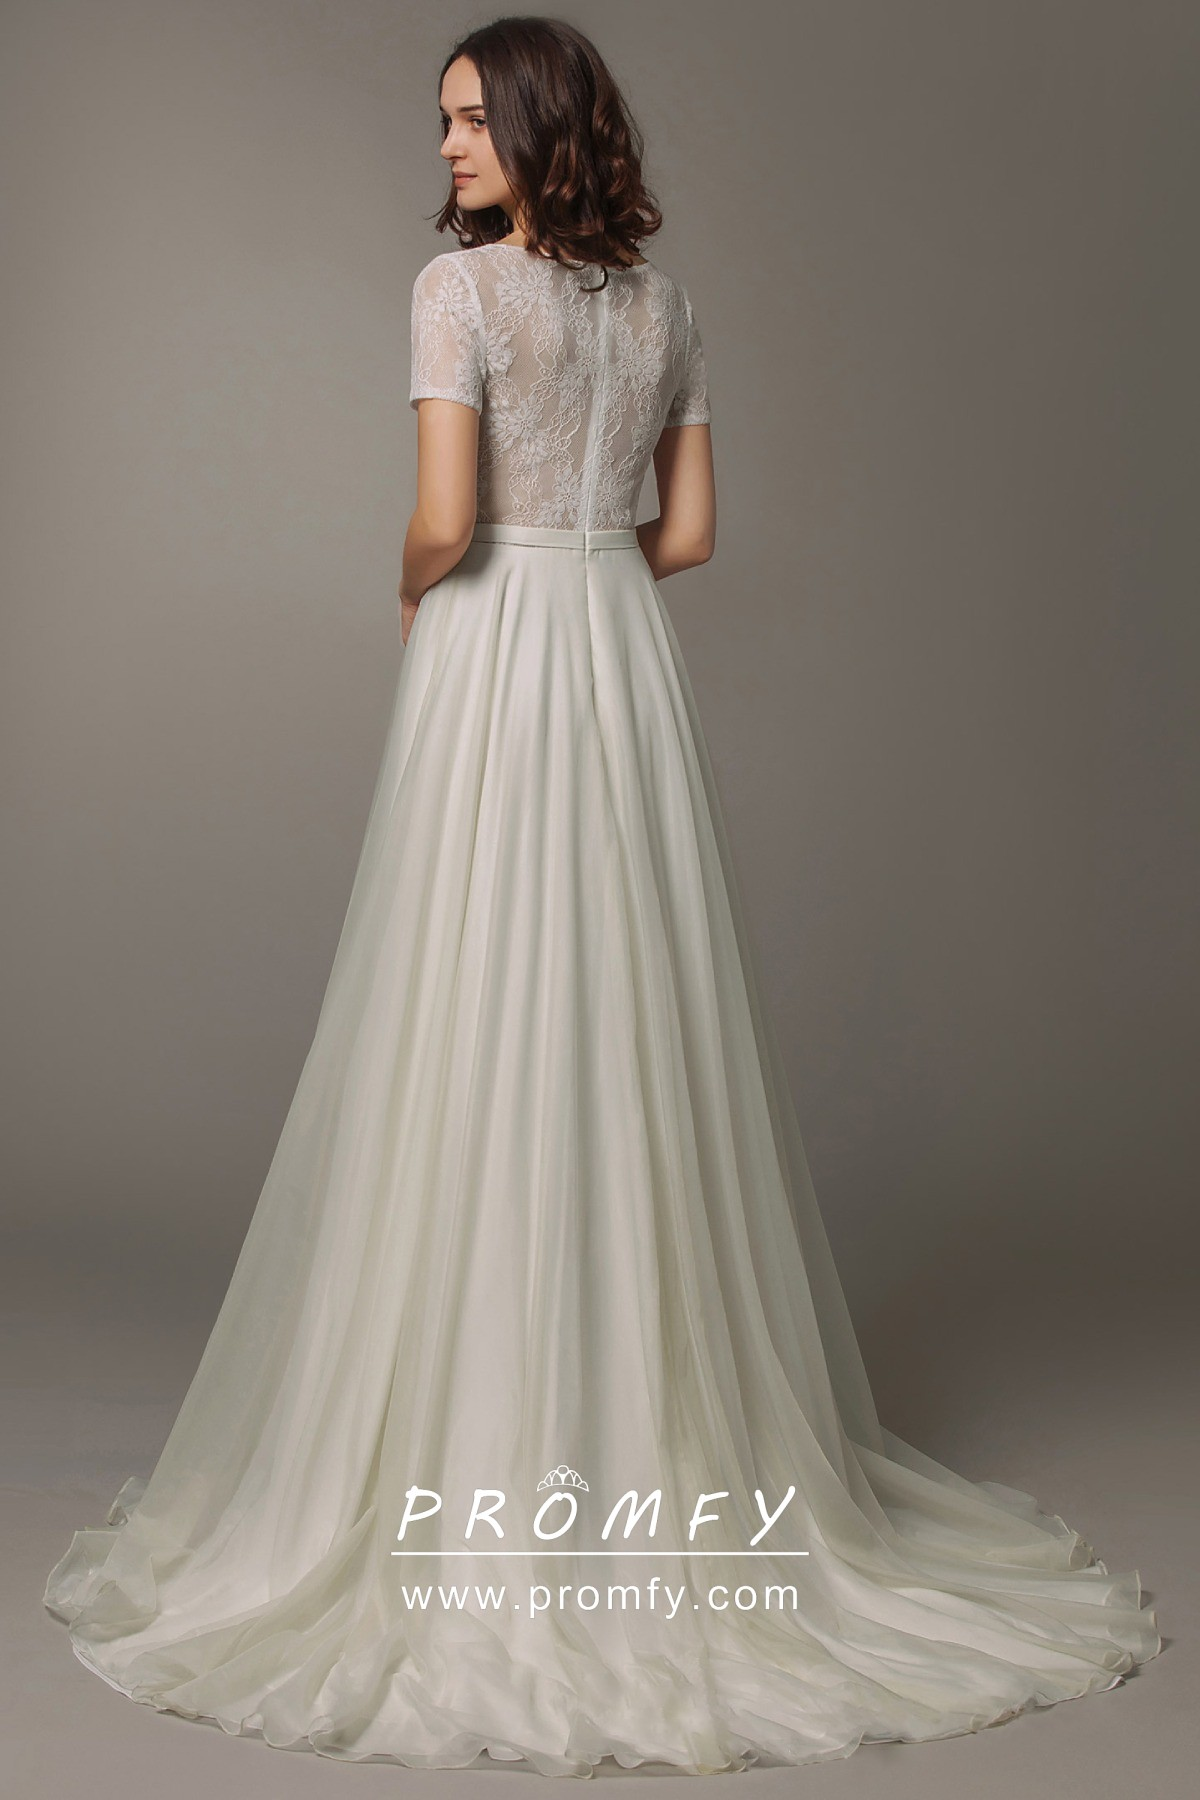 See Through Lace Top Modern A Line Wedding Dress Promfy